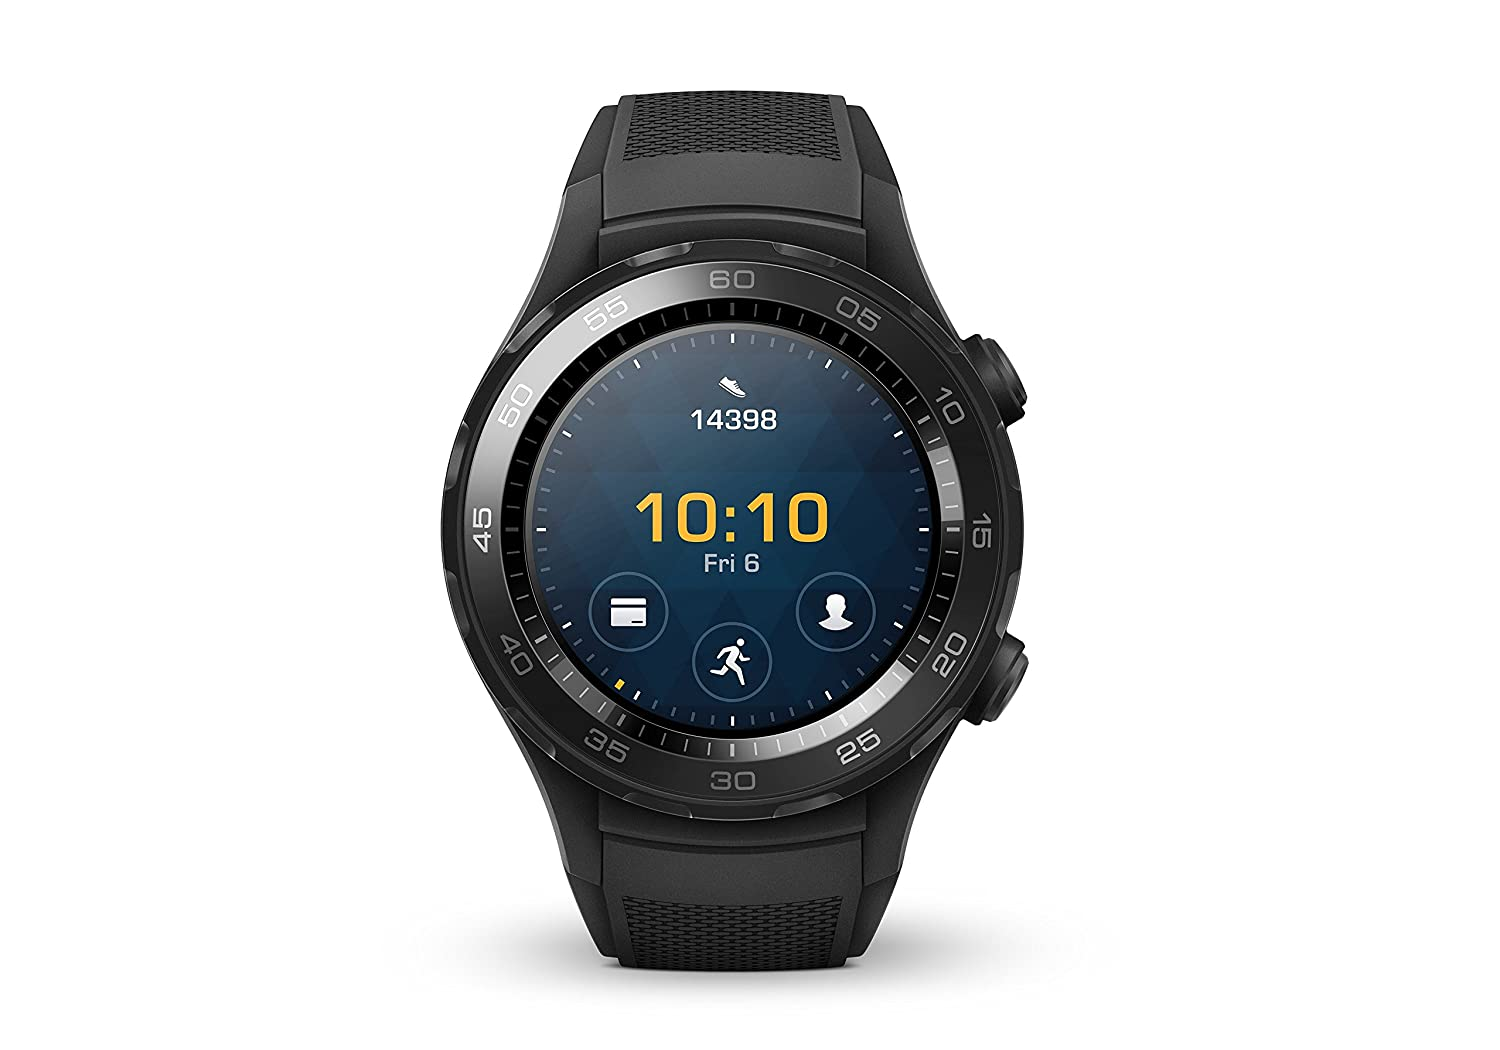 [amazon.it] Huawei Watch 2 Smartwatch Carbon Black WiFi um 150€